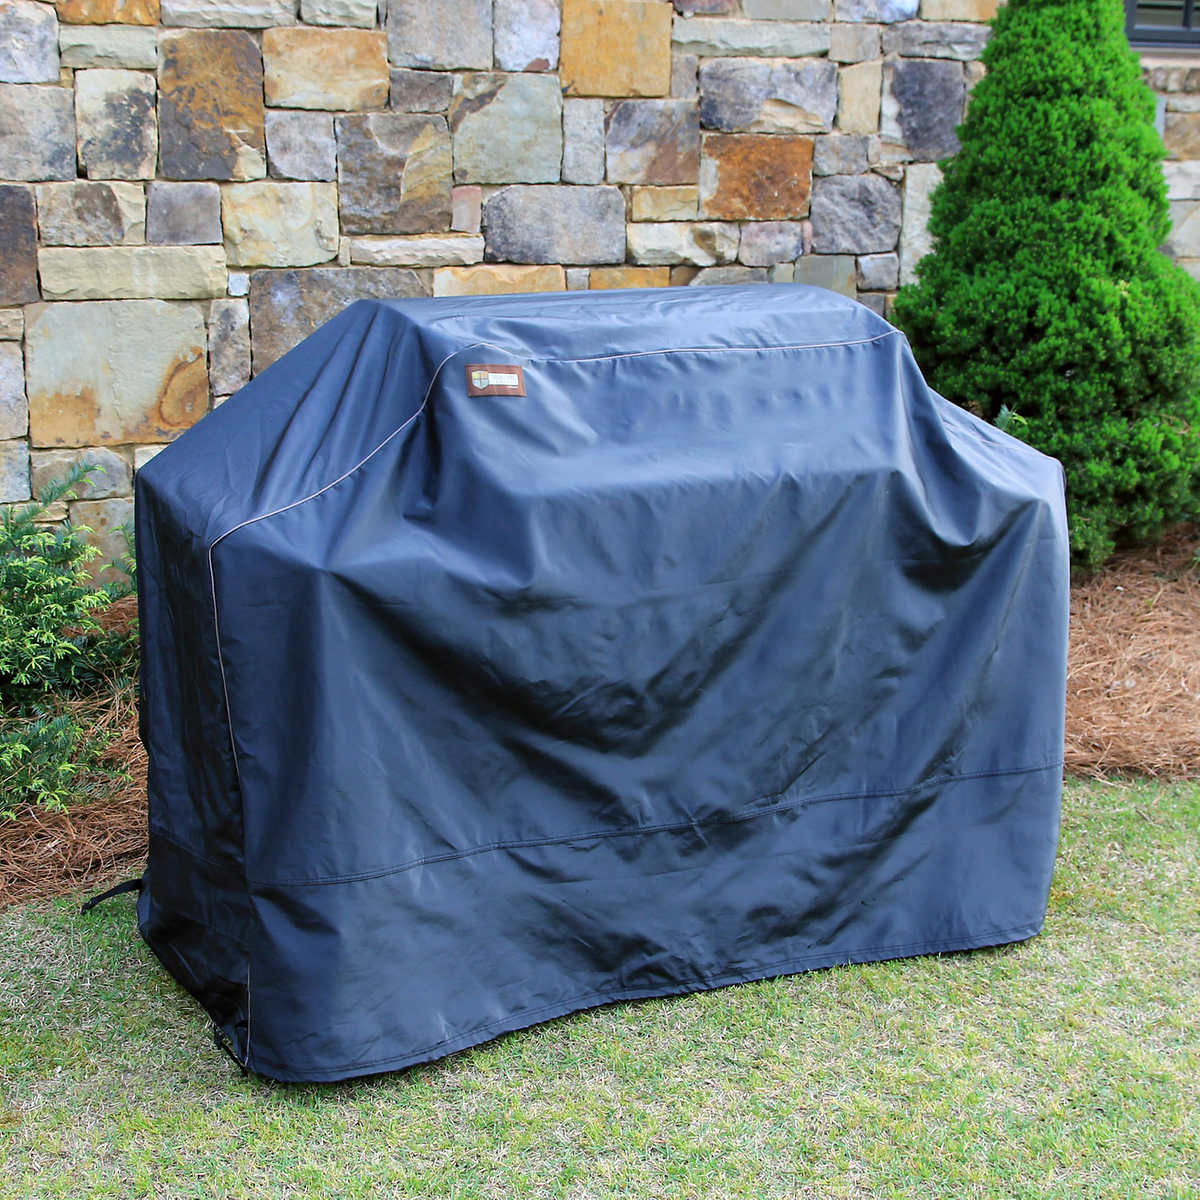 Grill Cover by Seasons Sentry - Black